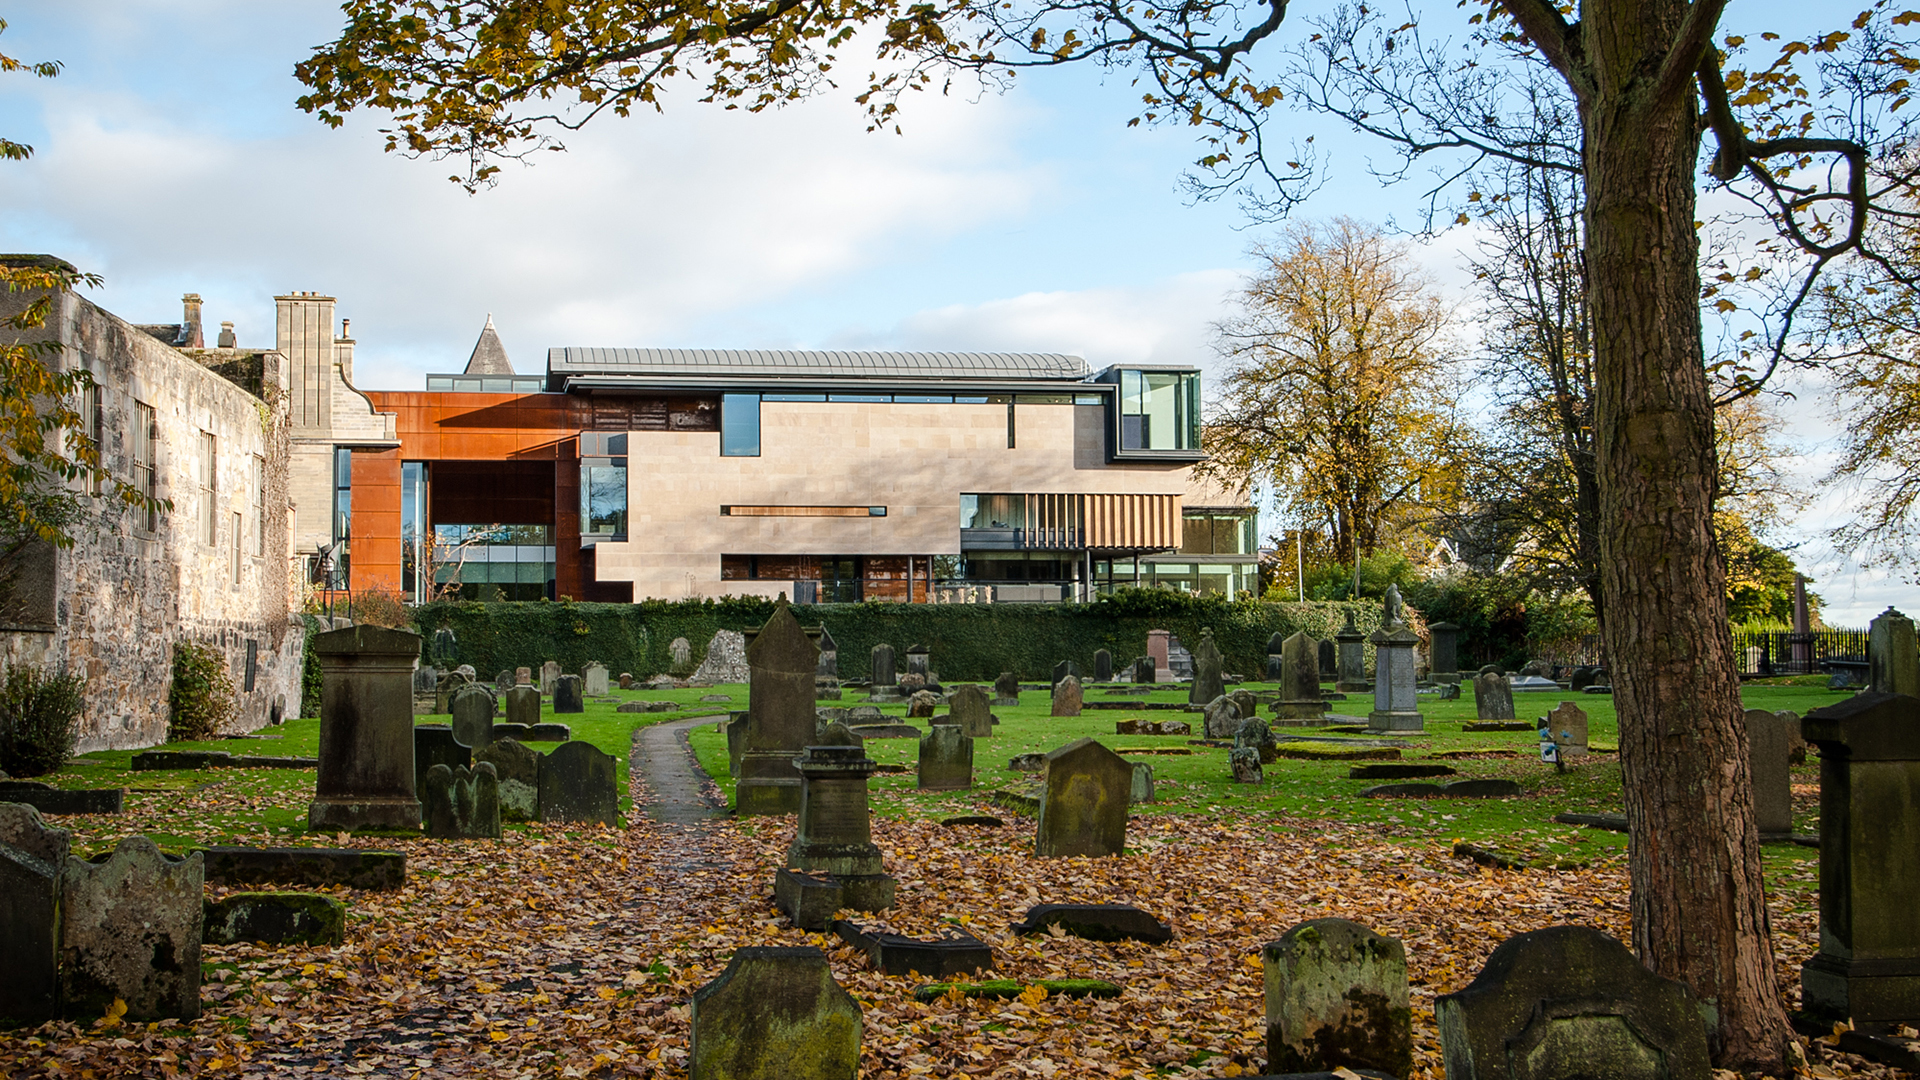 the new extension overlooking the Abbey graveyard